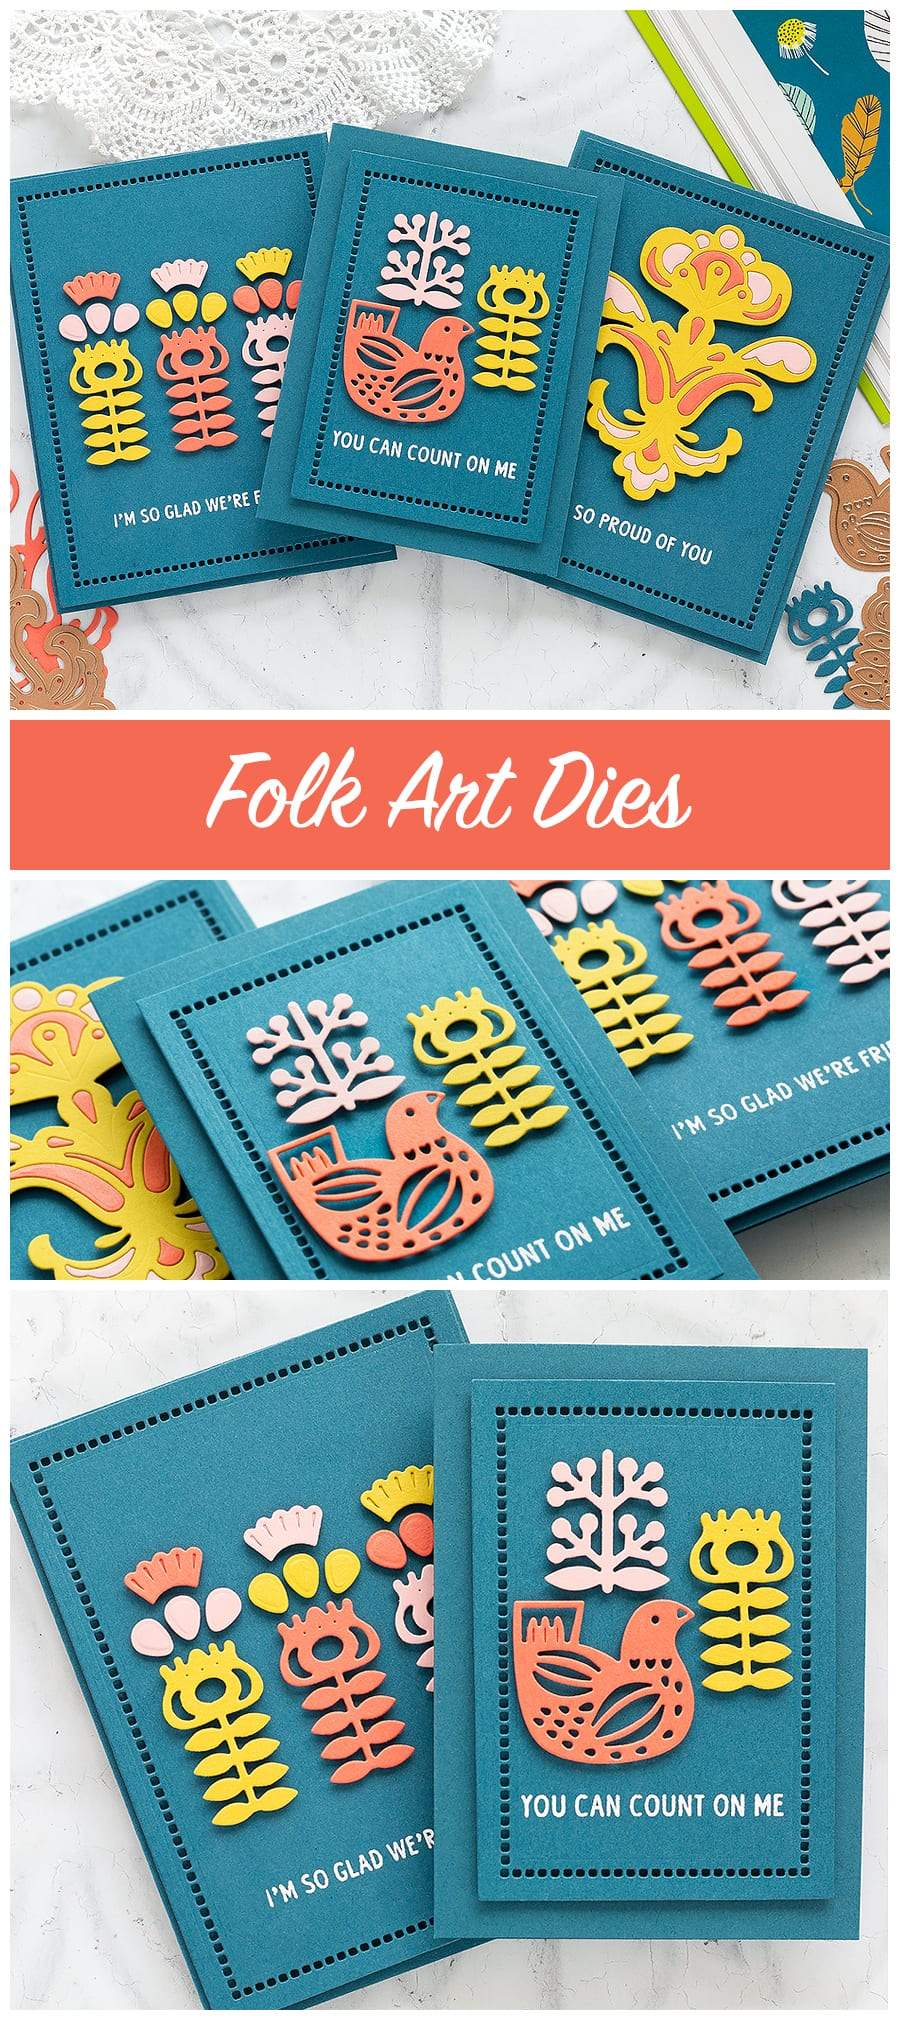 Folk art inspired handmade cards by Debby Hughes using Spellbinders dies. Find out more: https://limedoodledesign.com/2018/04/folk-art-inspired-cards-spellbinders-april-blog-hop/